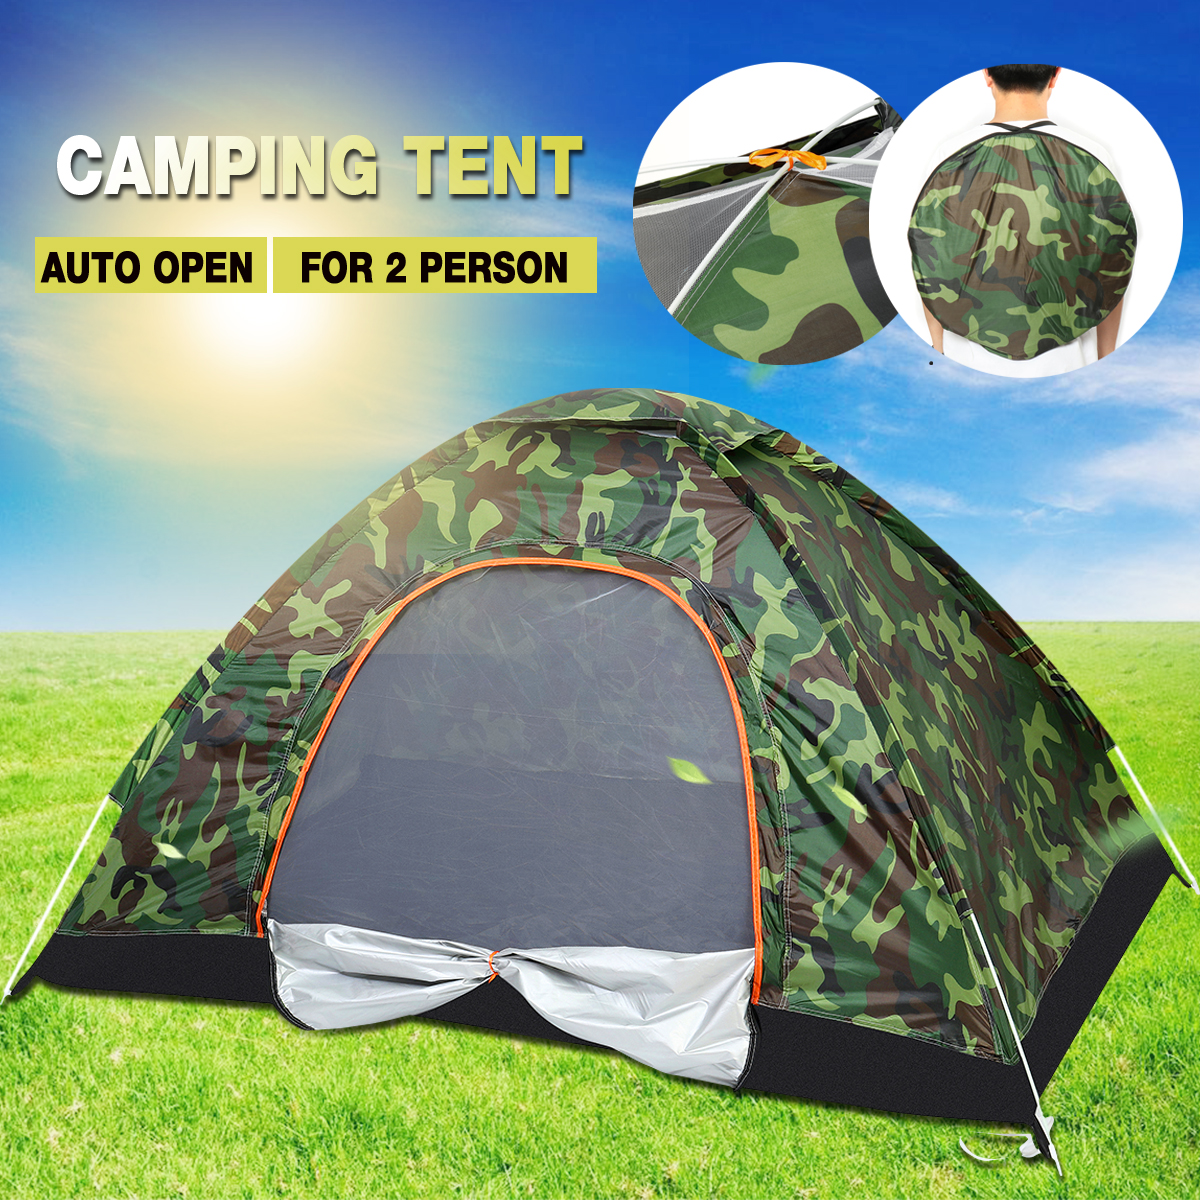 Details about 2 3 Man Person Family Pop Up Tent Portable Auto Camping Hiking Beach Dome Tent